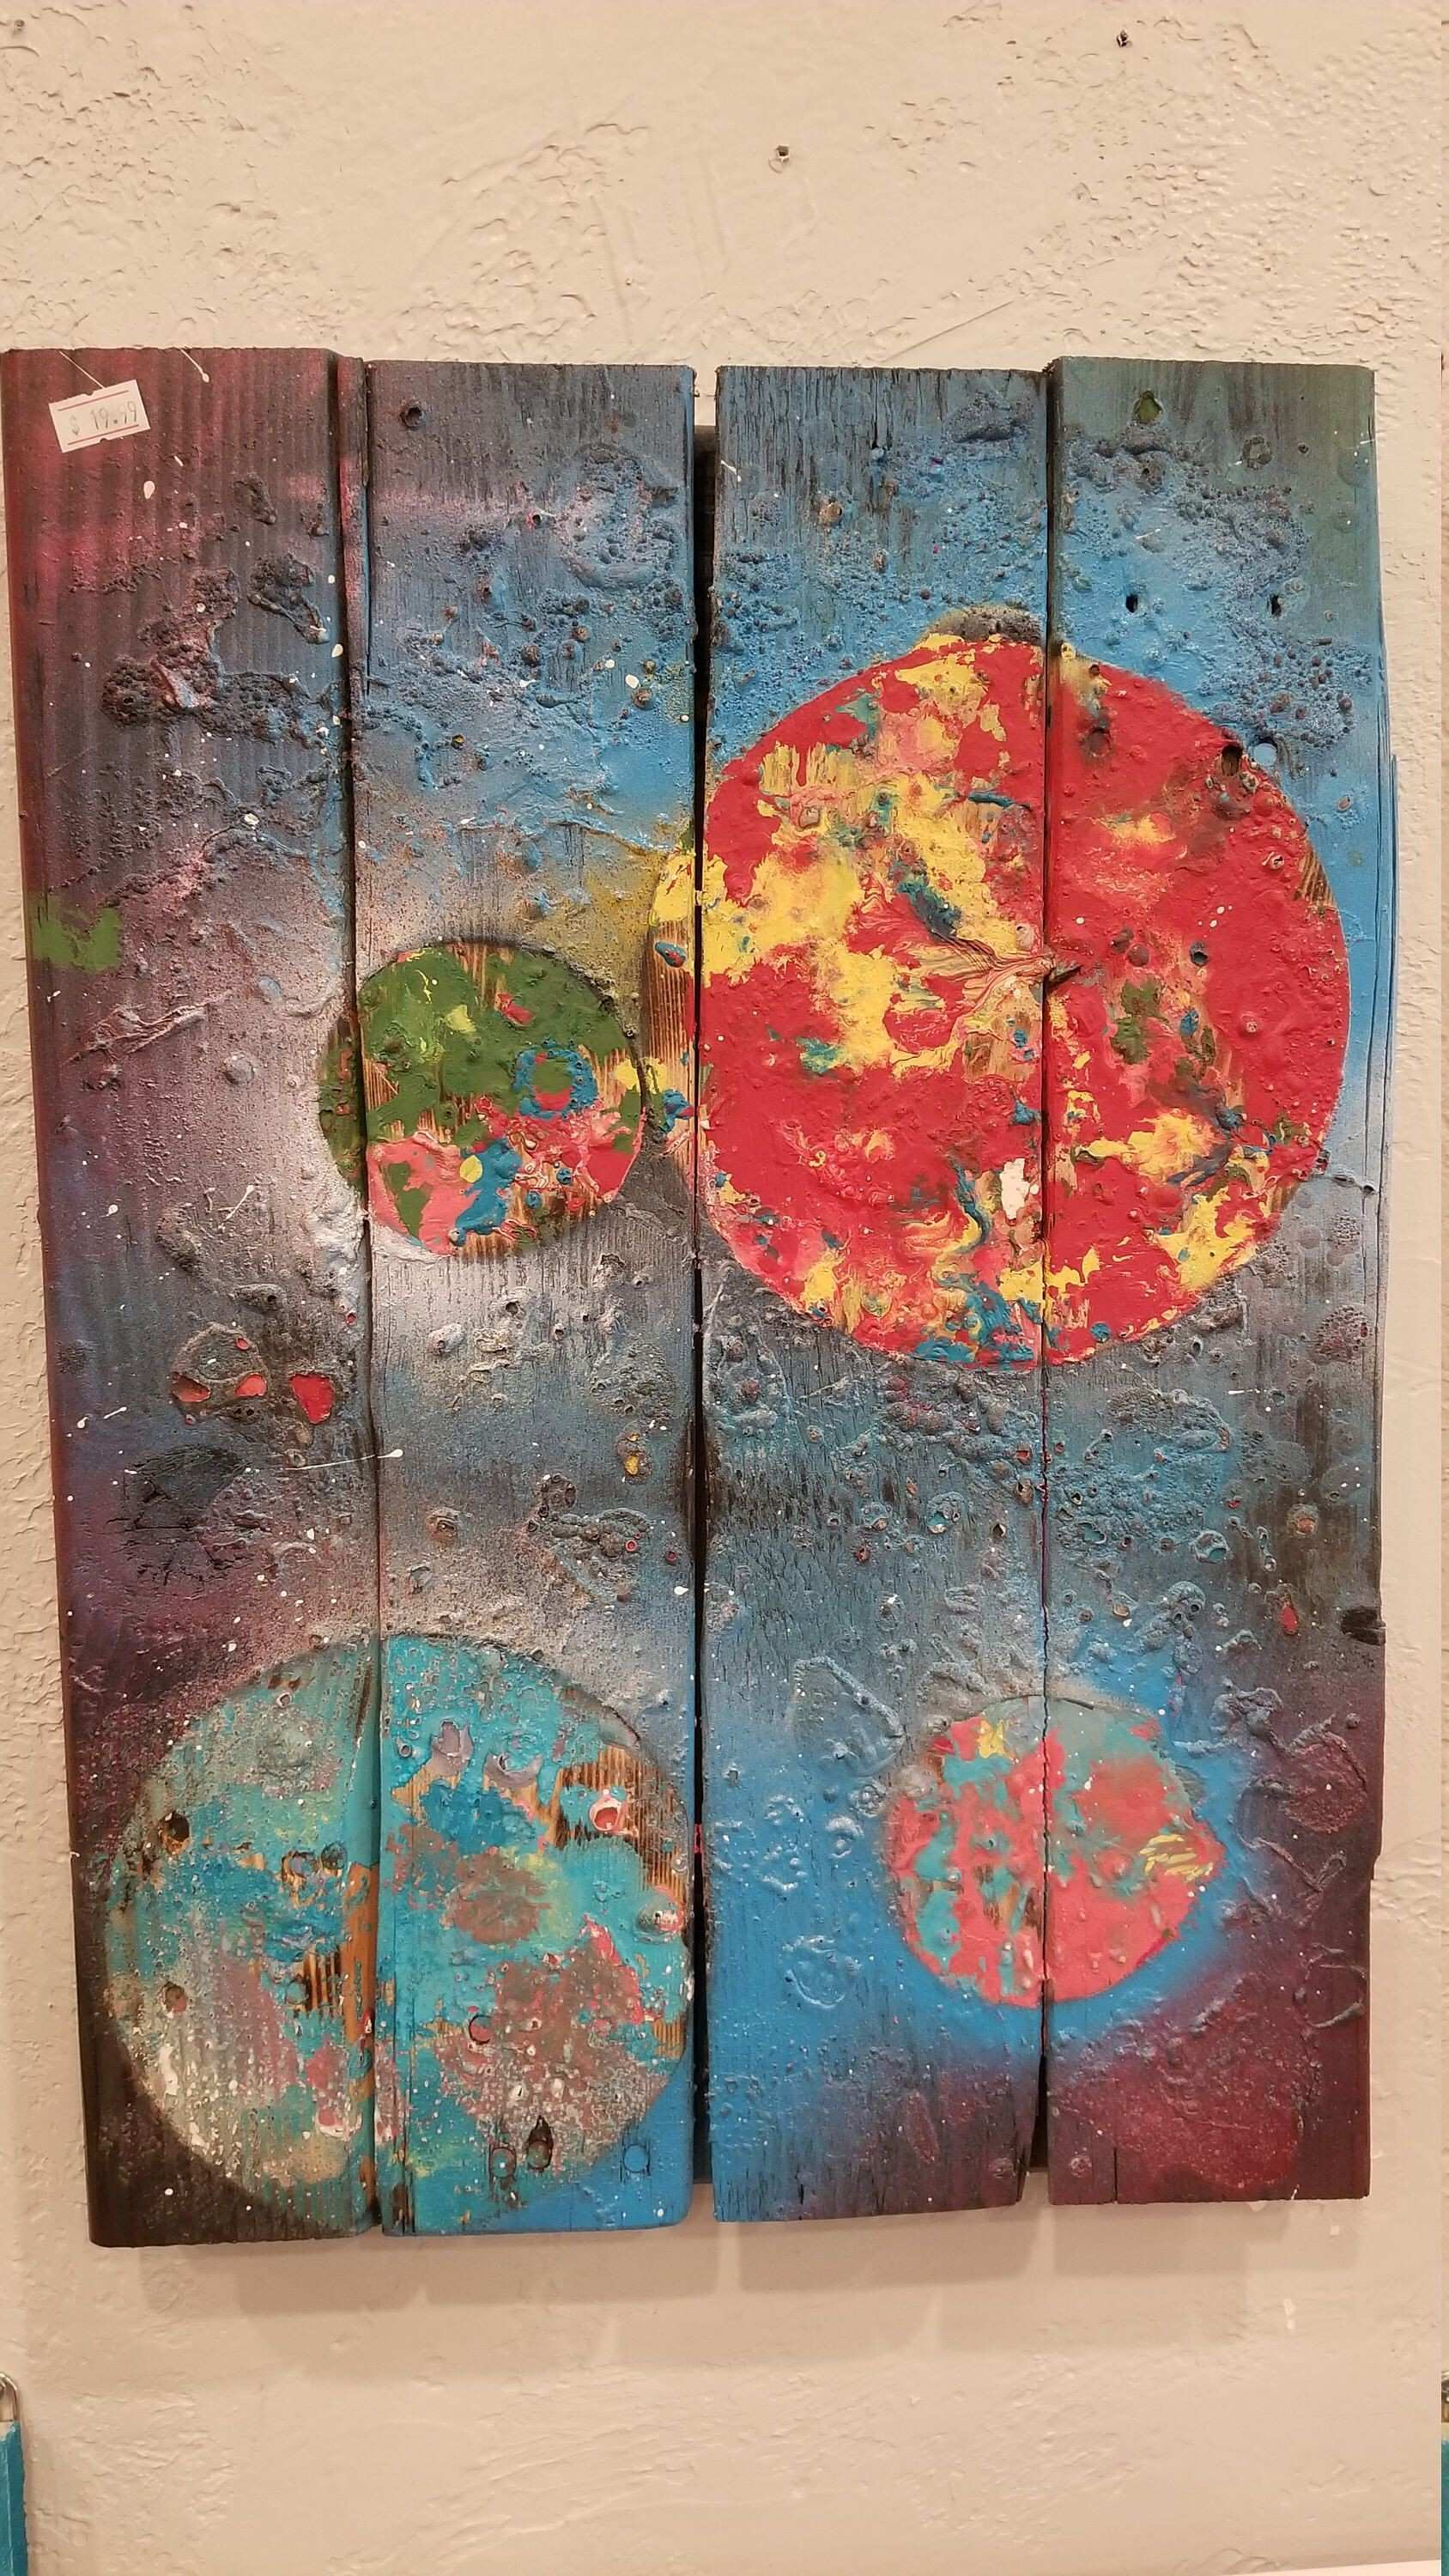 Rustic chalk painted space scene on pallet wood